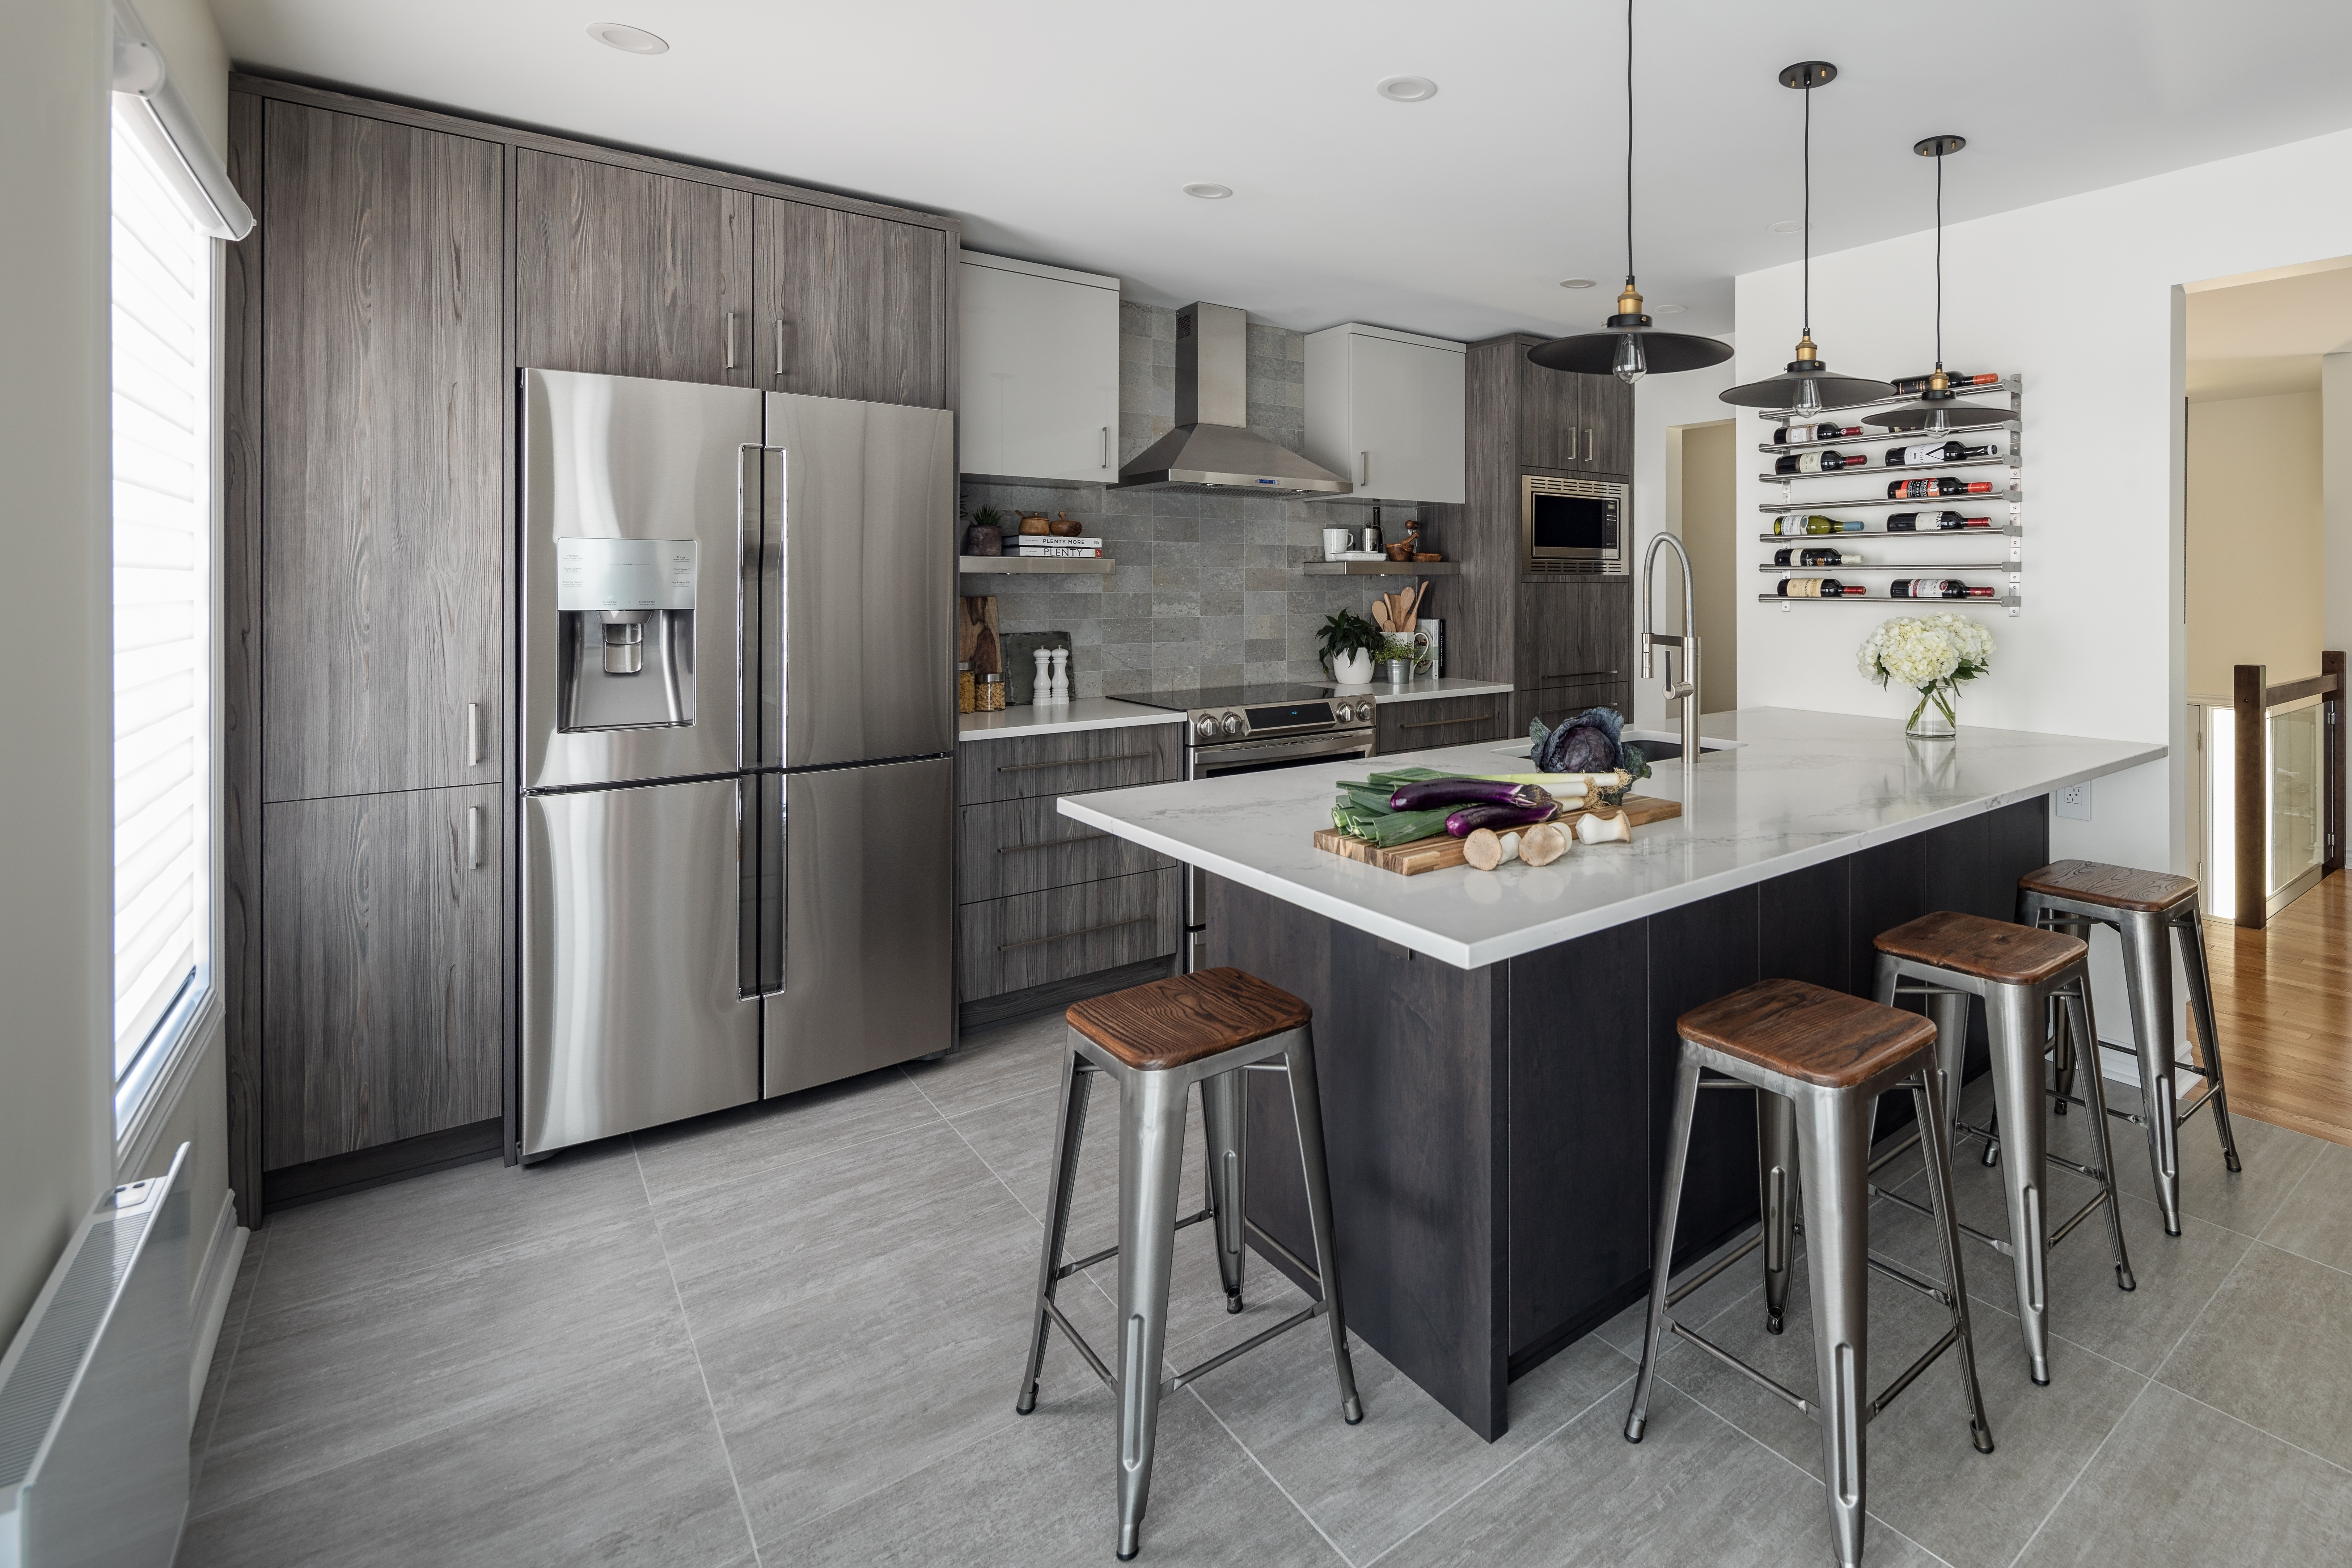 Astro Design Kitchen Remodel